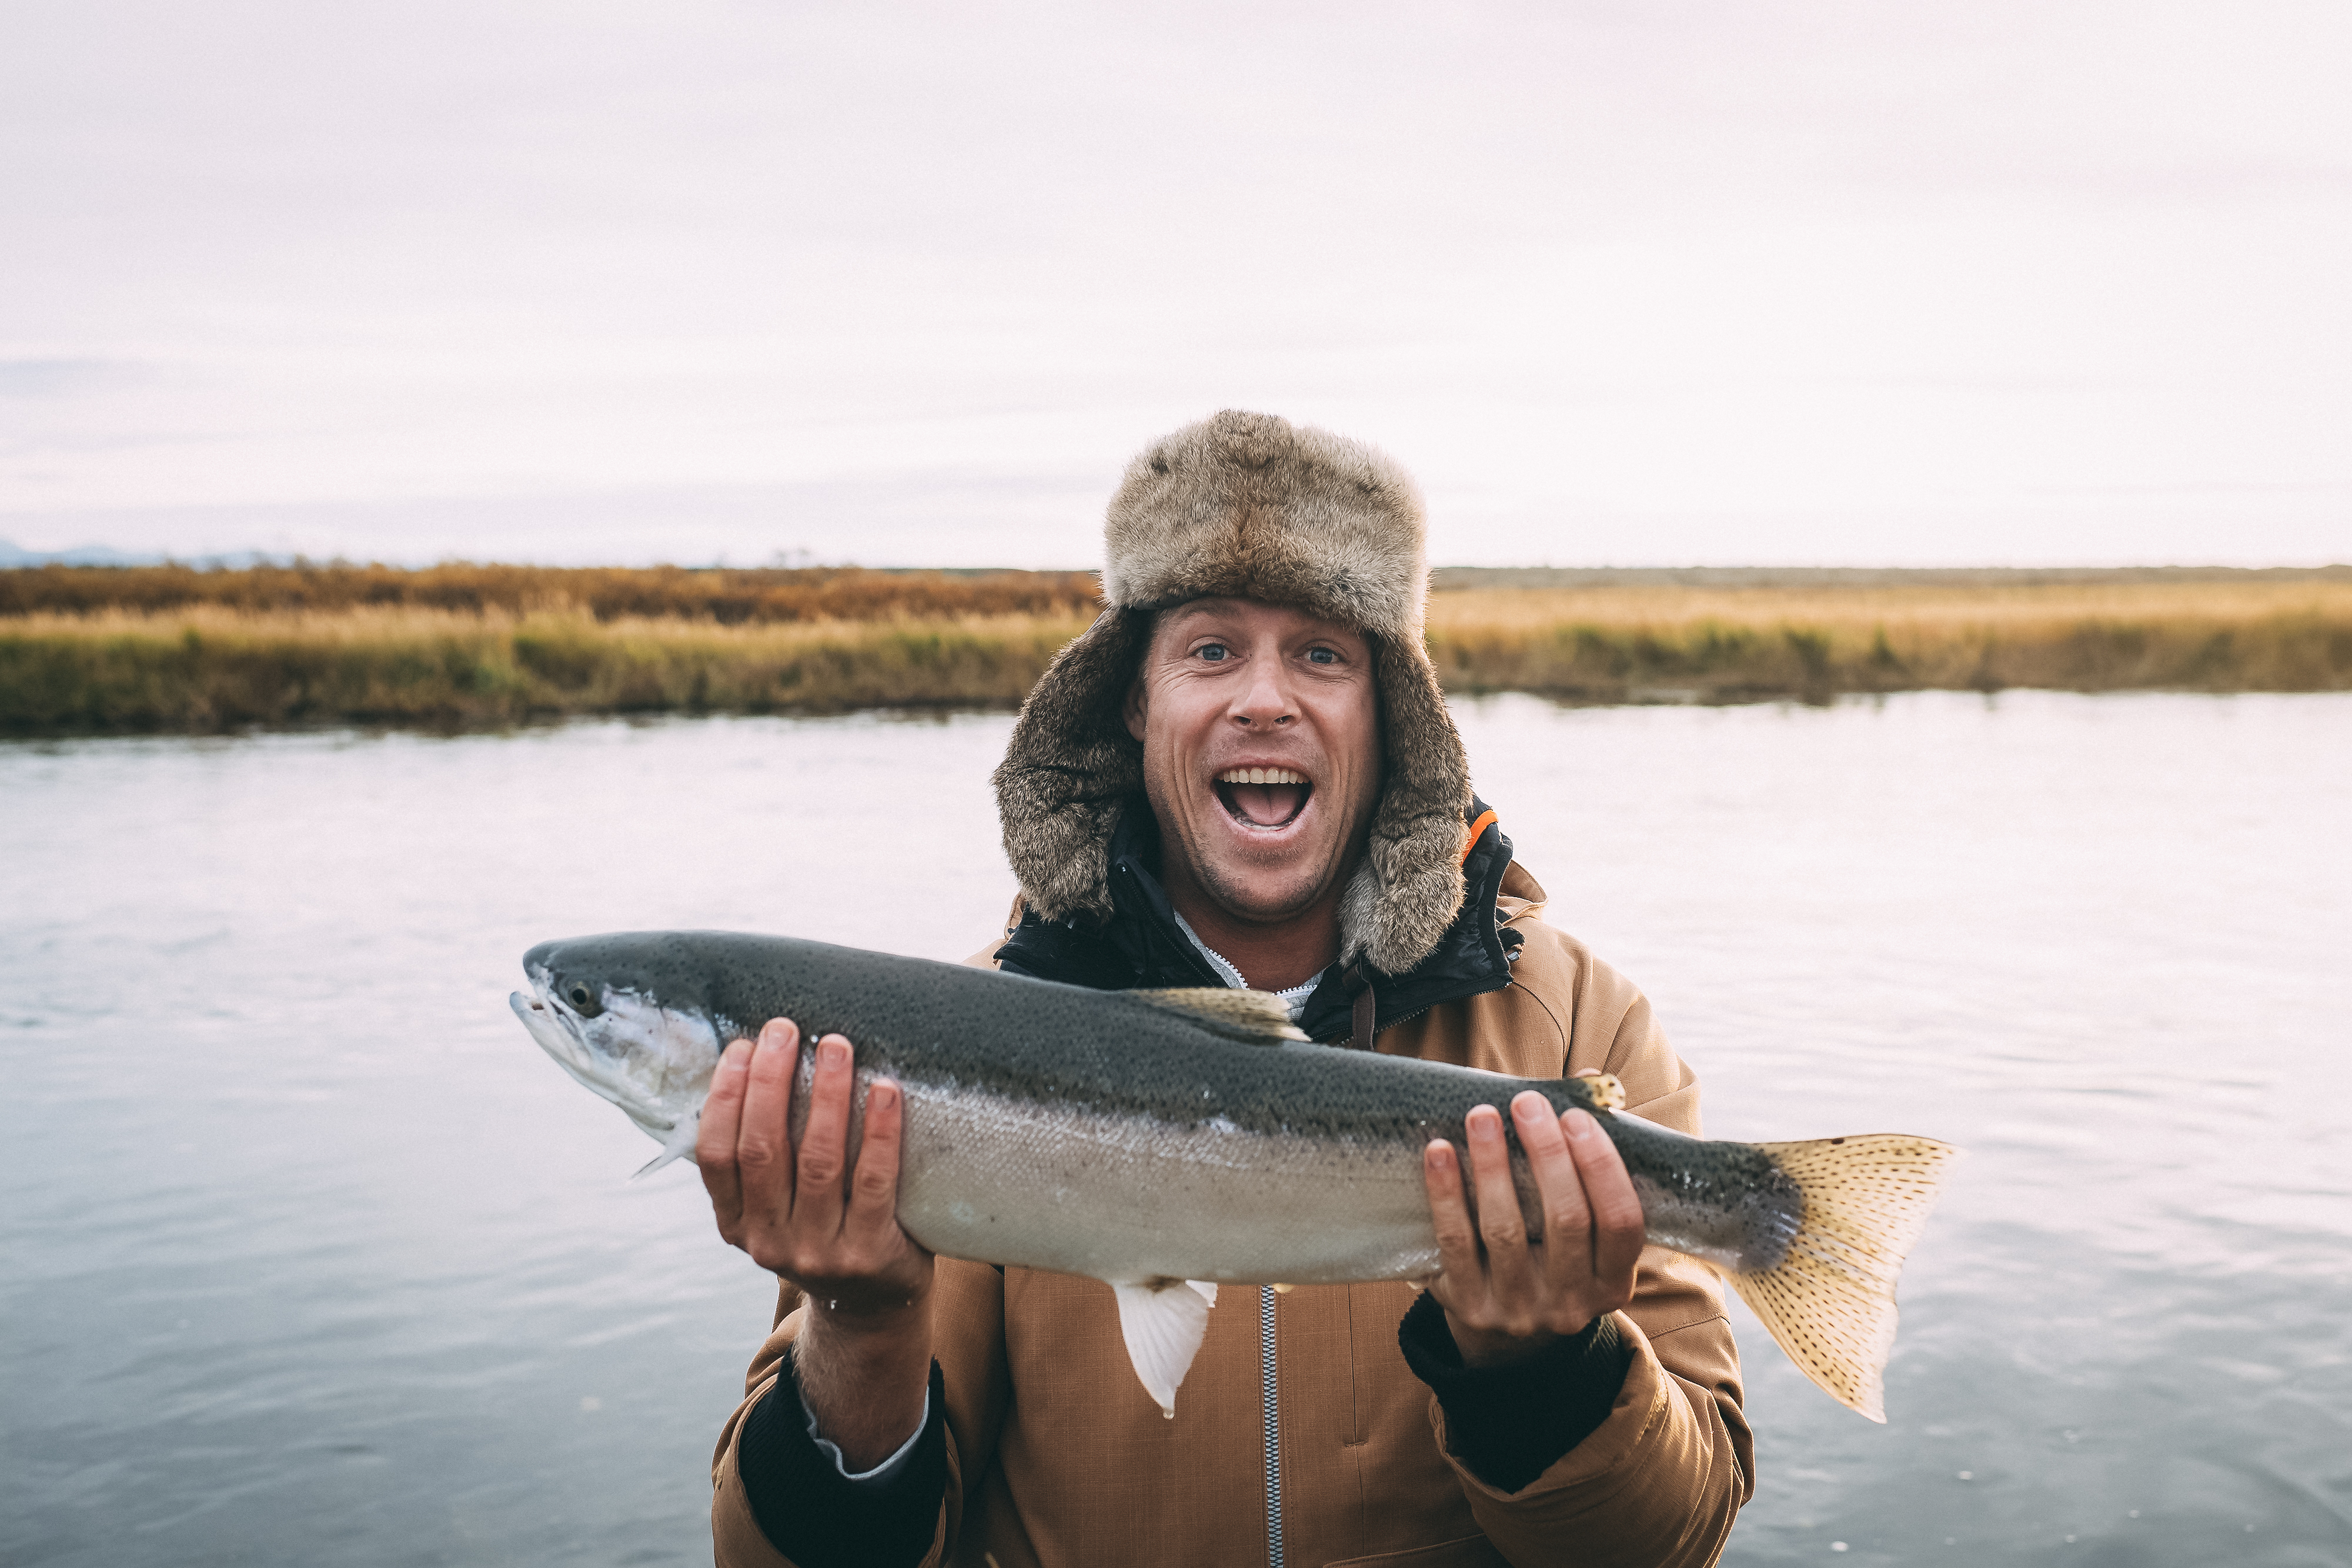 Mick Fanning The Conservationist: First Look At His Expedition To Alaska's Bristol